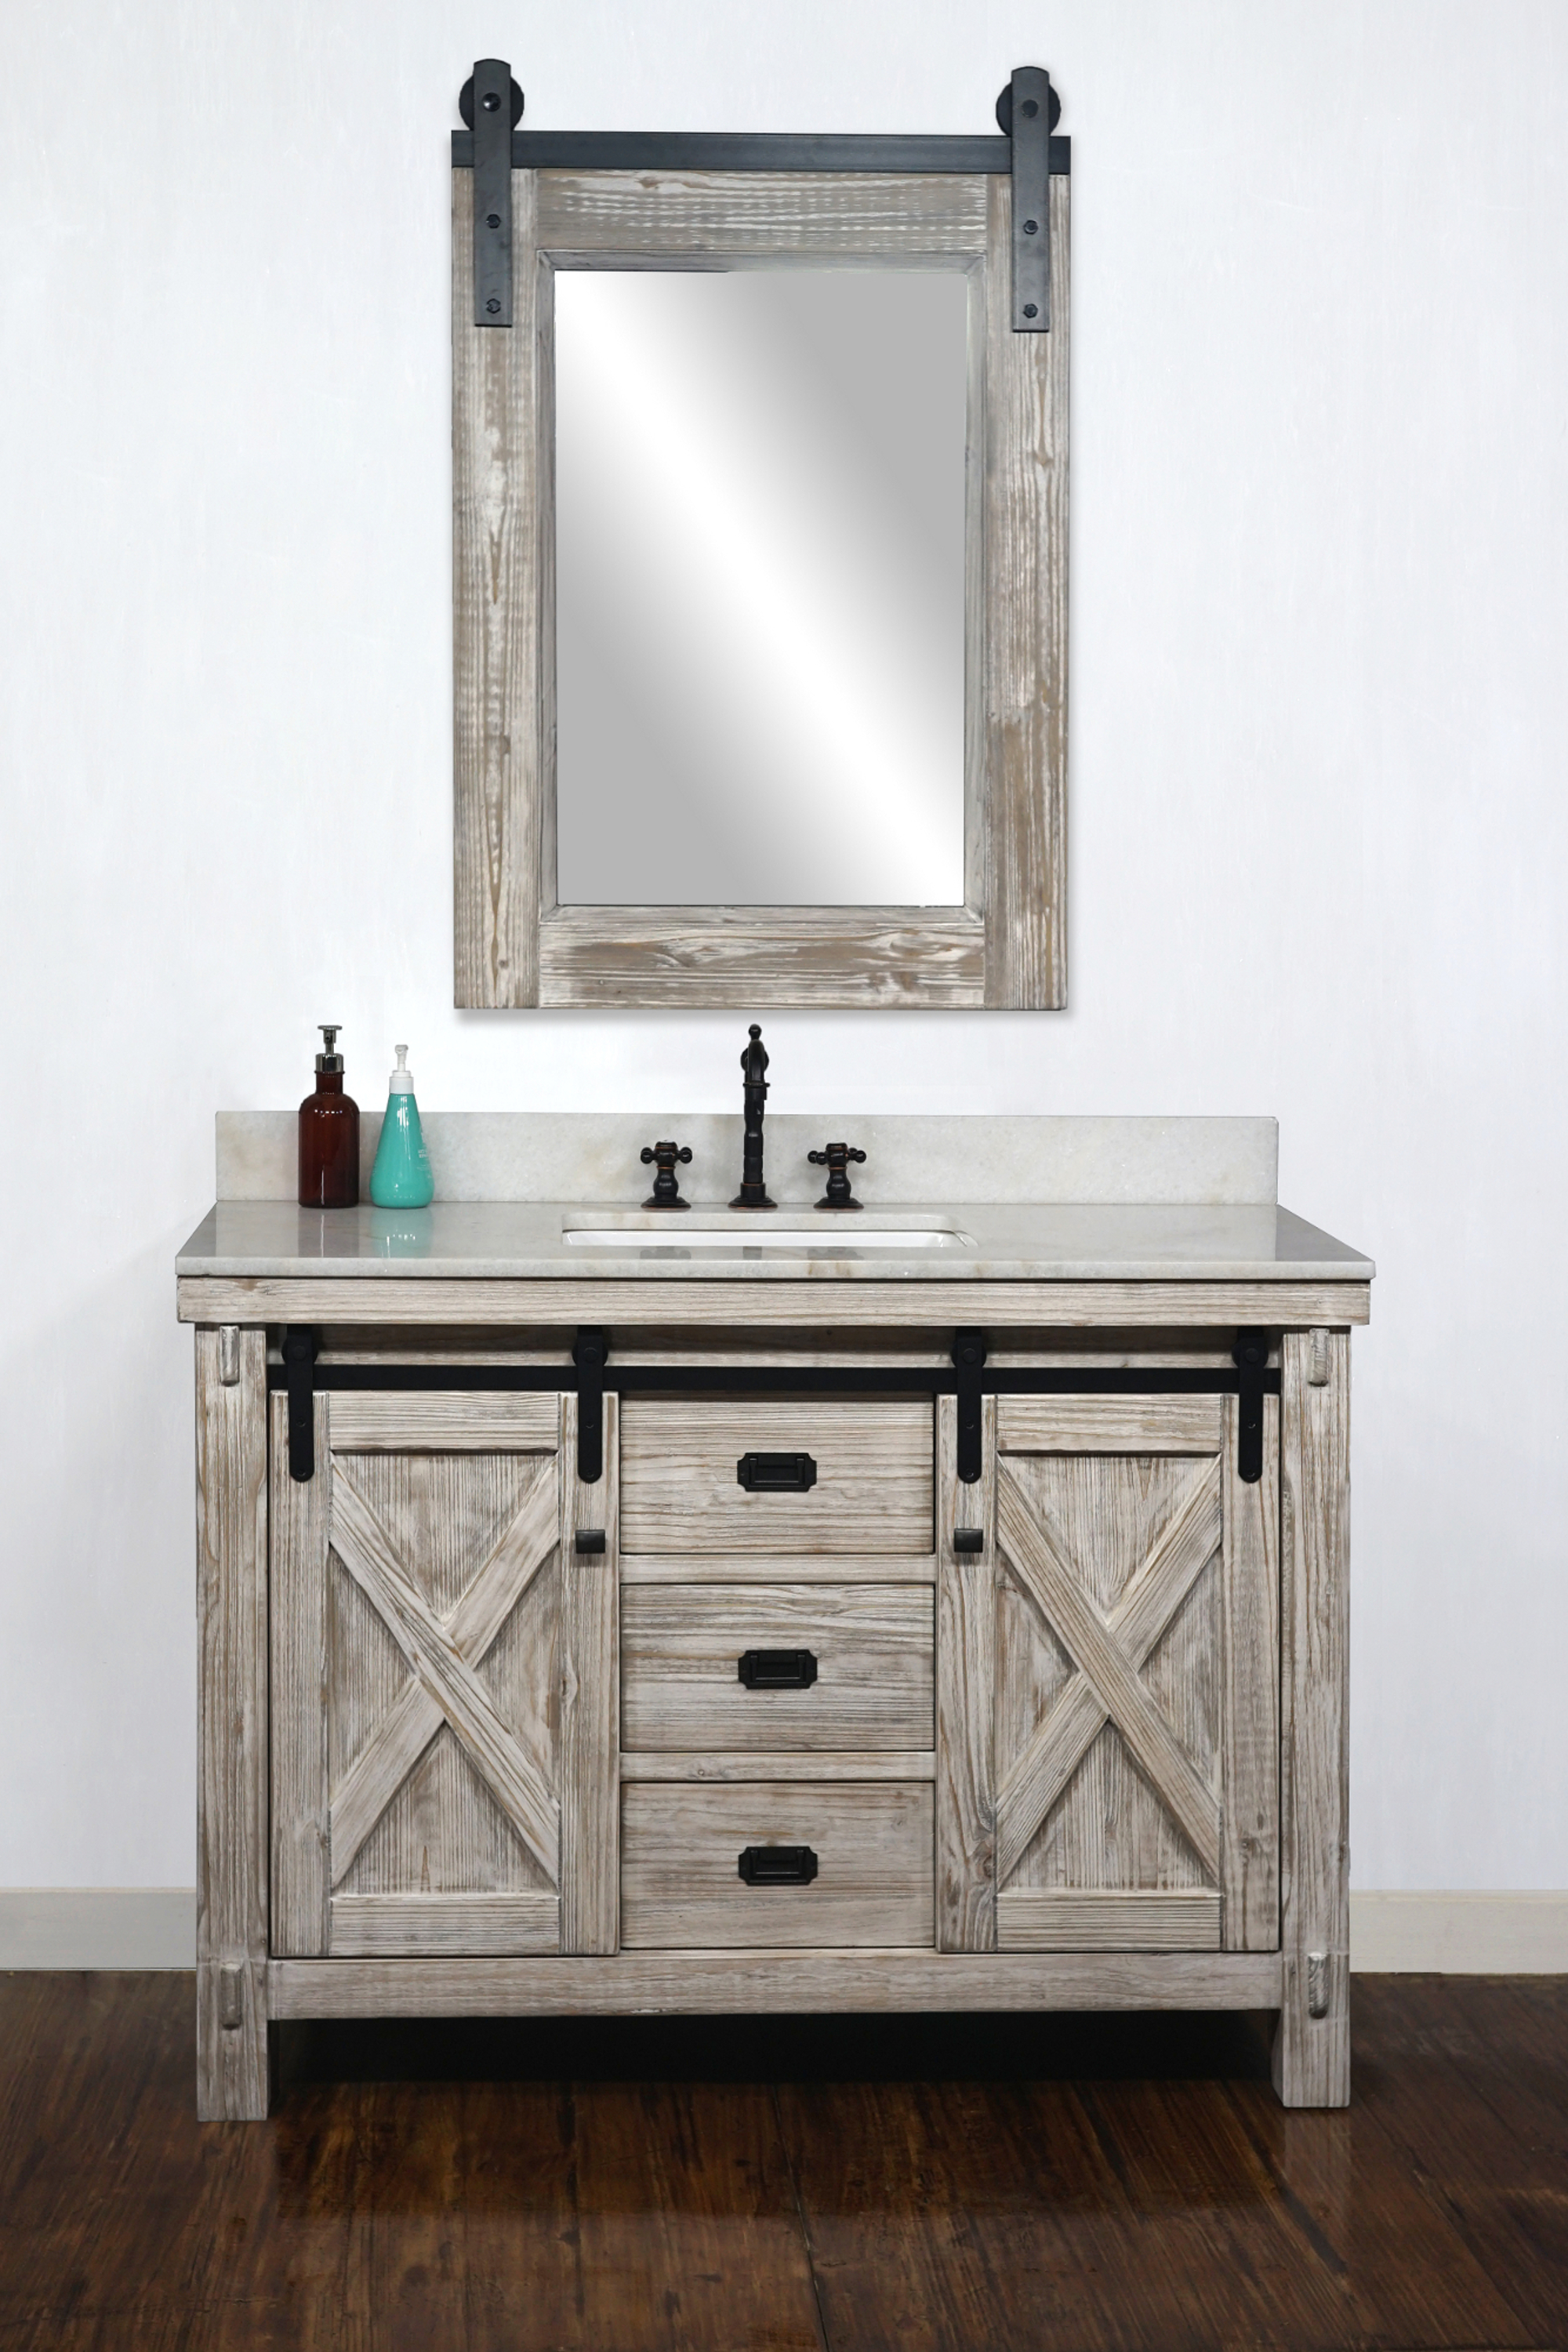 "48"" Rustic Solid Fir Barn Door Style Single Sink Vanity in White Washed - No Faucet with Countertop Options"